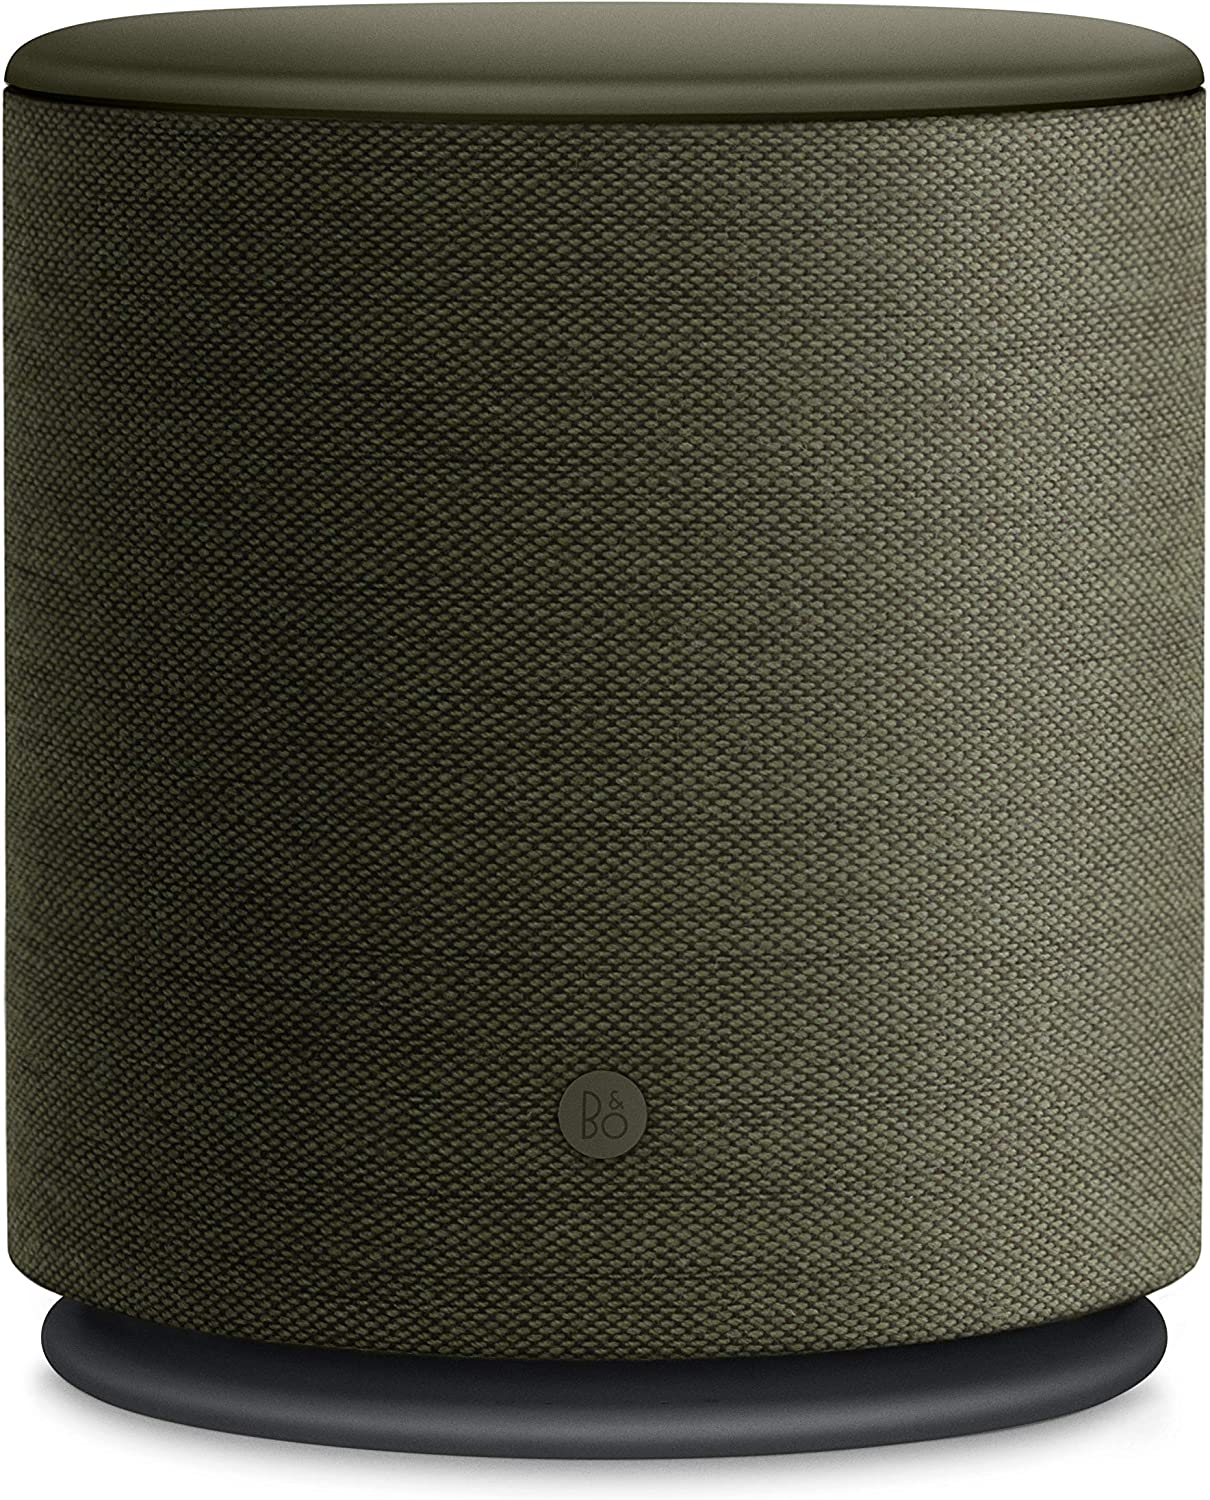 Vebos Stand B&O BeoPlay M5 White One Pair and Optimal Sound ...